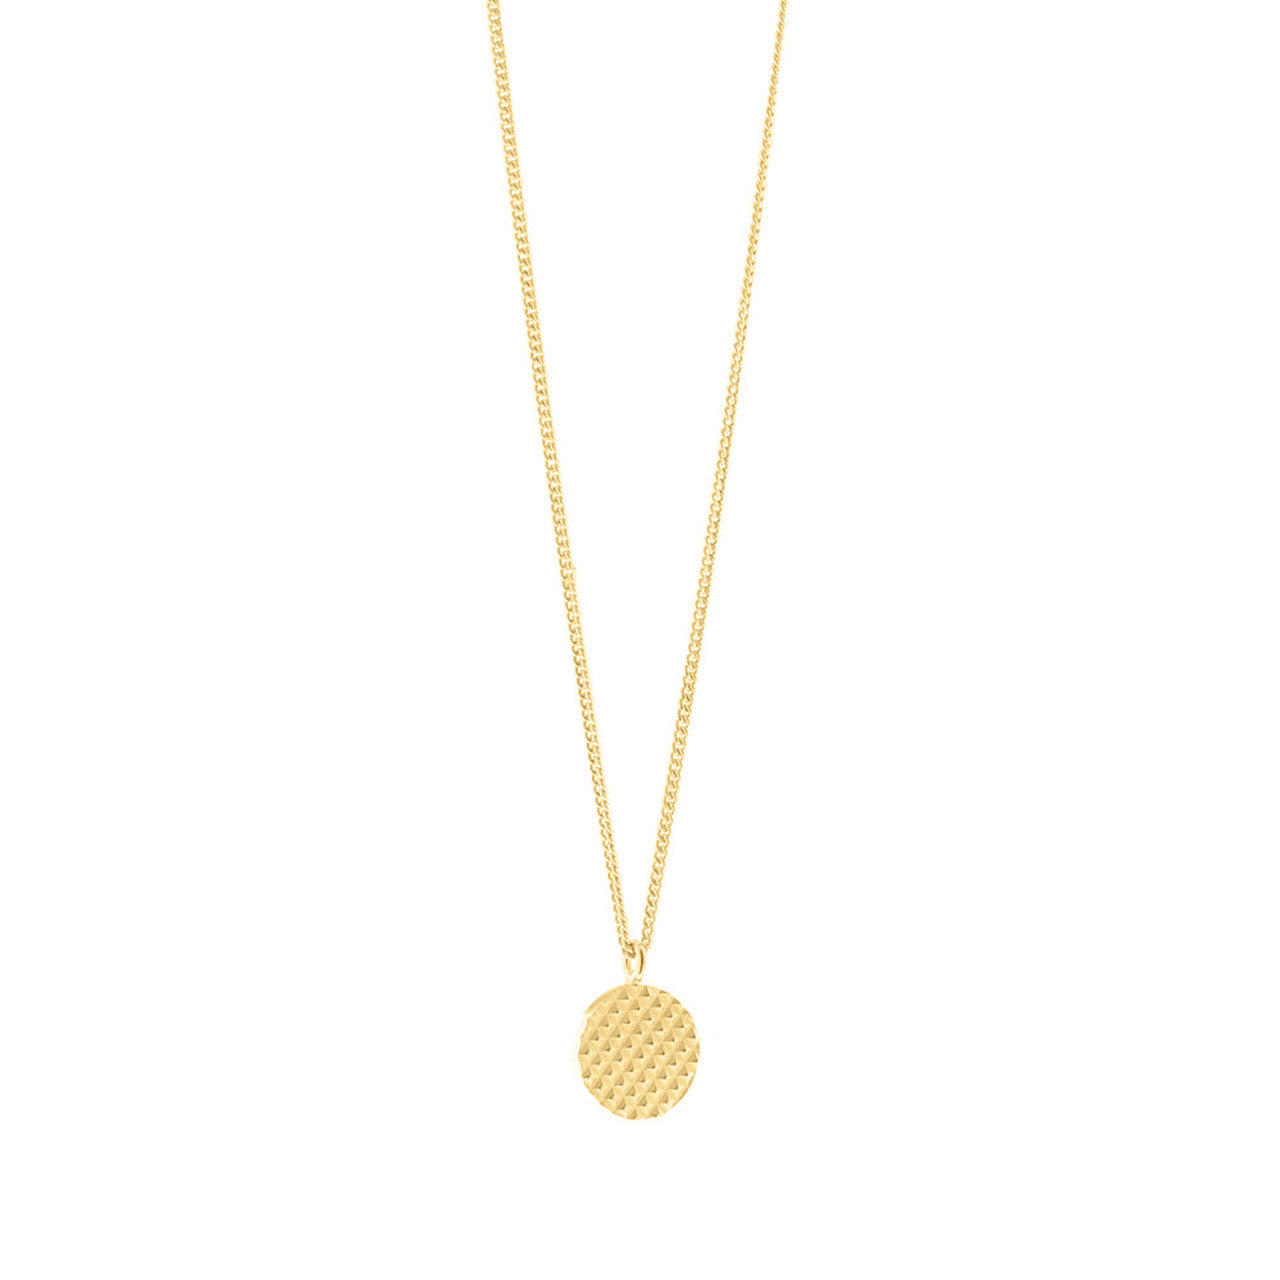 gold engraved pendant necklace